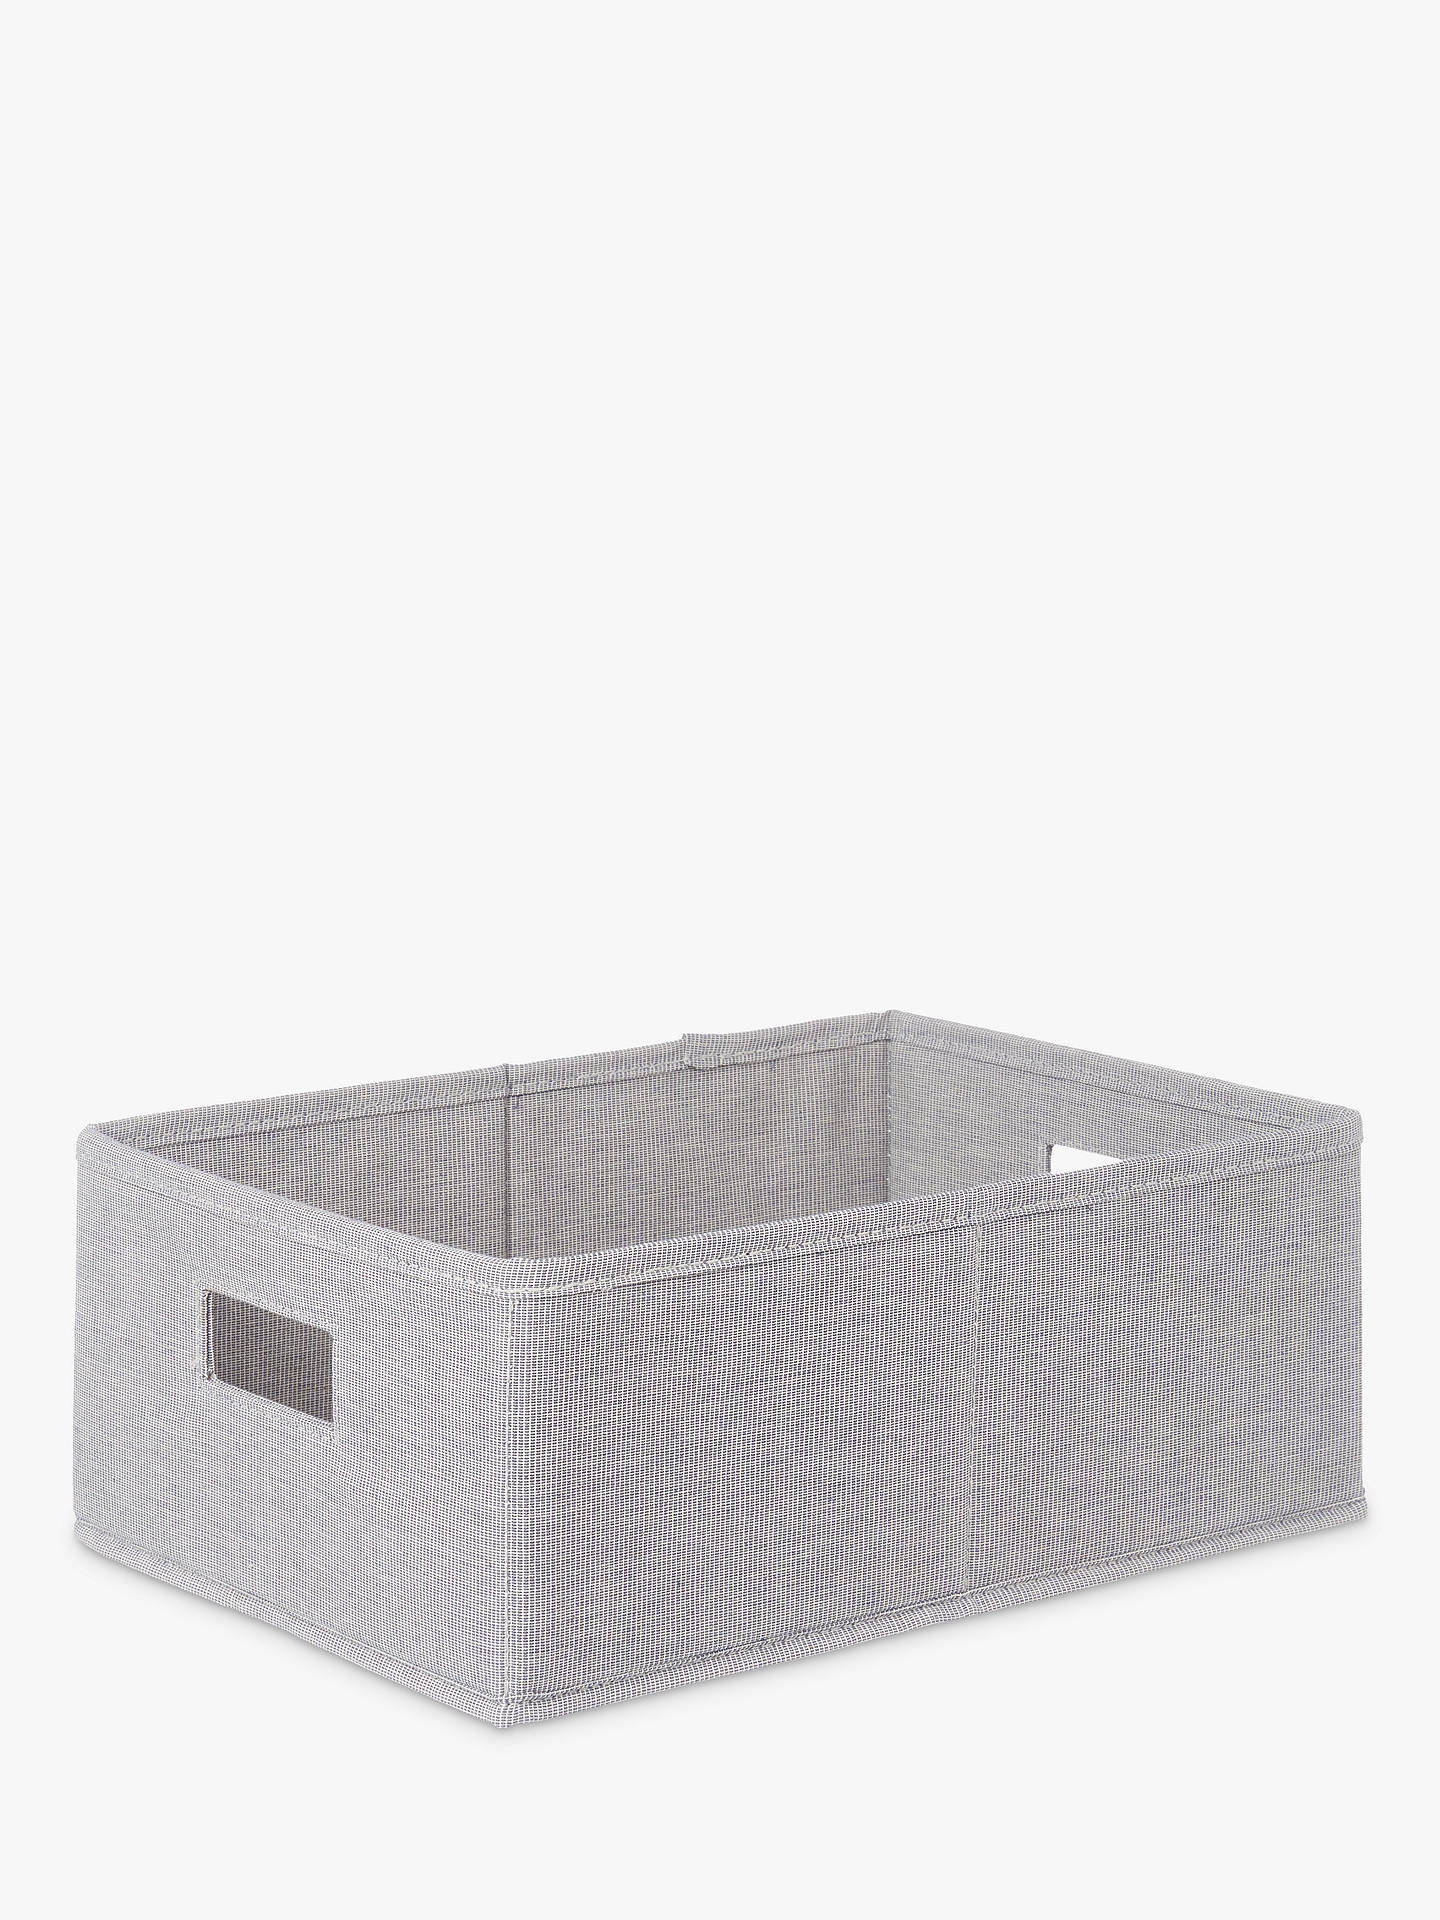 john lewis partners mix it storage box grey small at. Black Bedroom Furniture Sets. Home Design Ideas